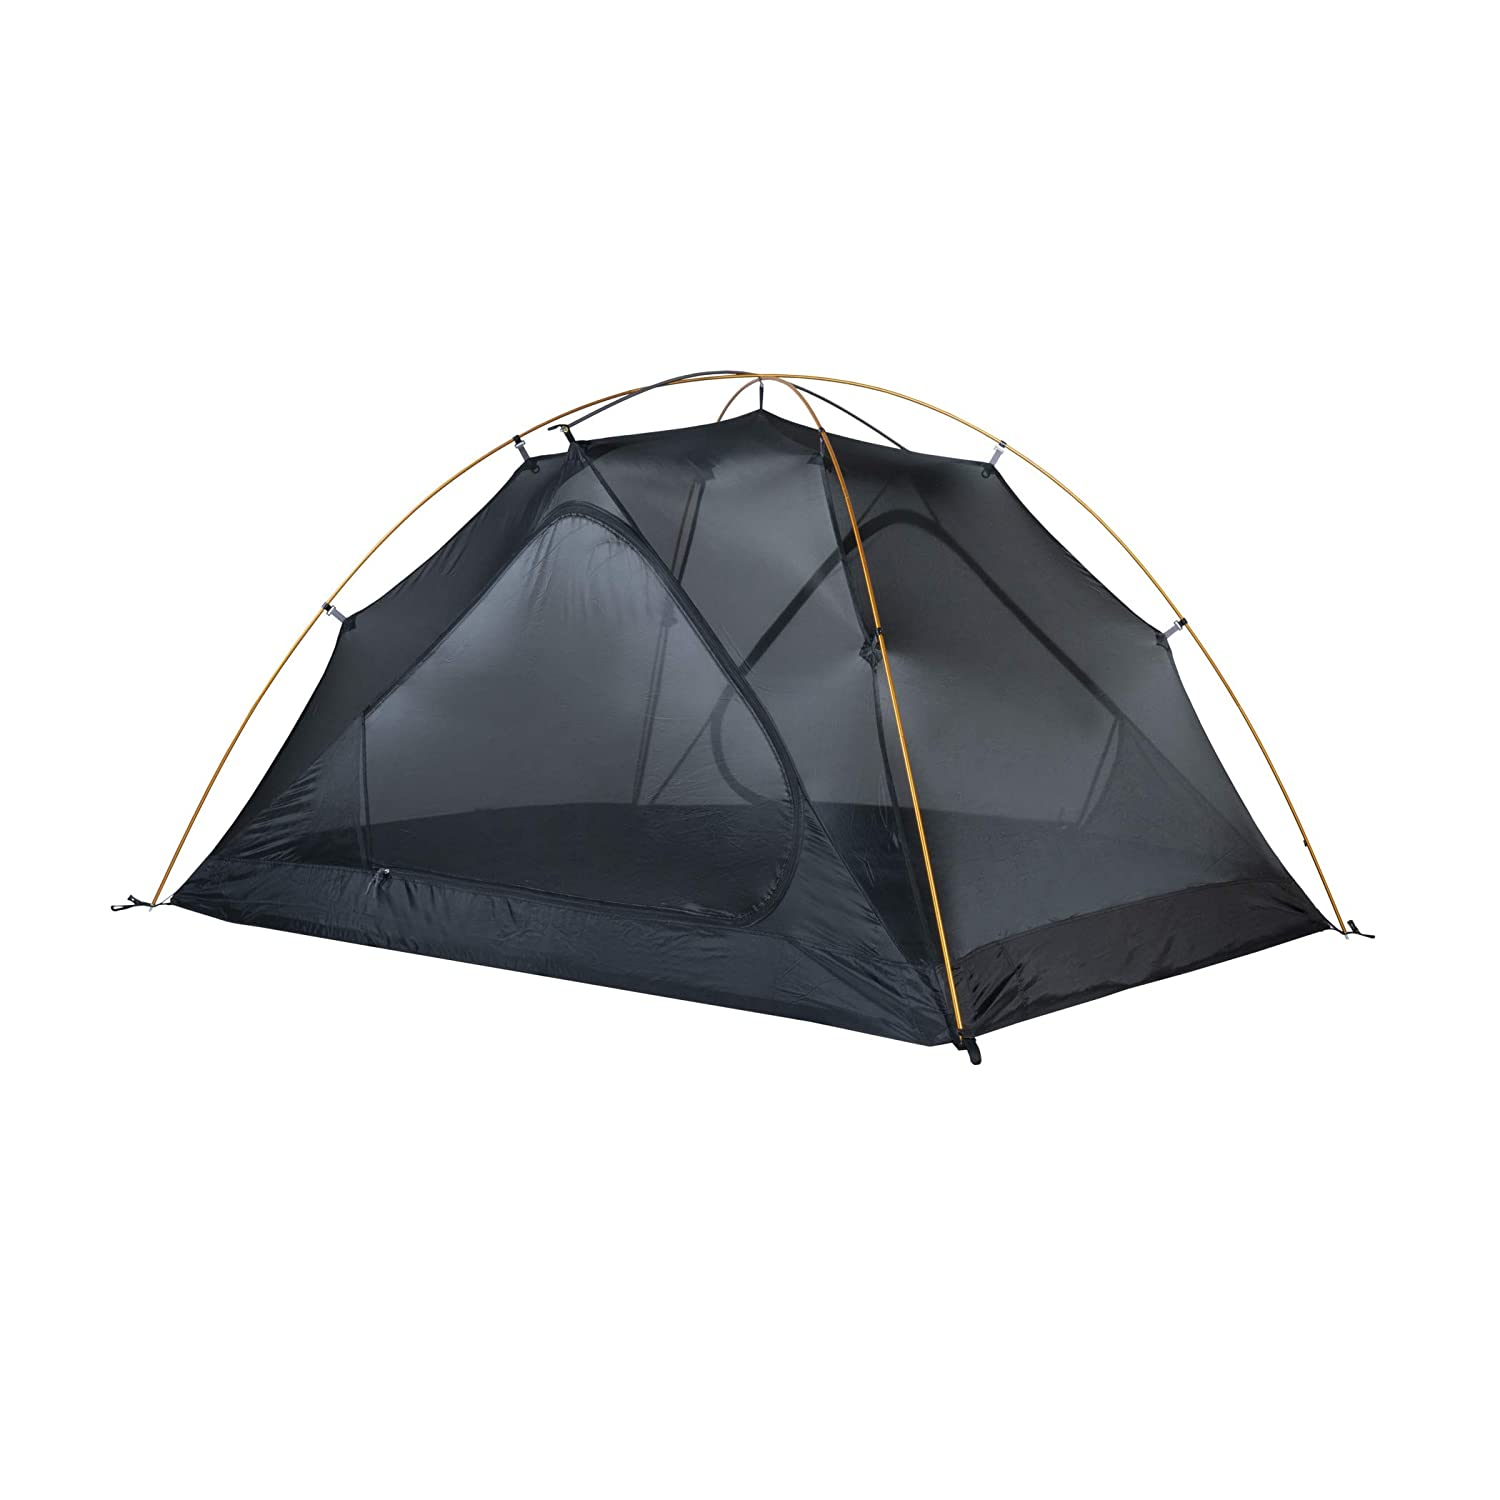 TETON Sports Mountain Ultra Tent; 1-4 Person Backpacking Dome Tent; Great for Camping; Waterproof Tent with Footprint Included